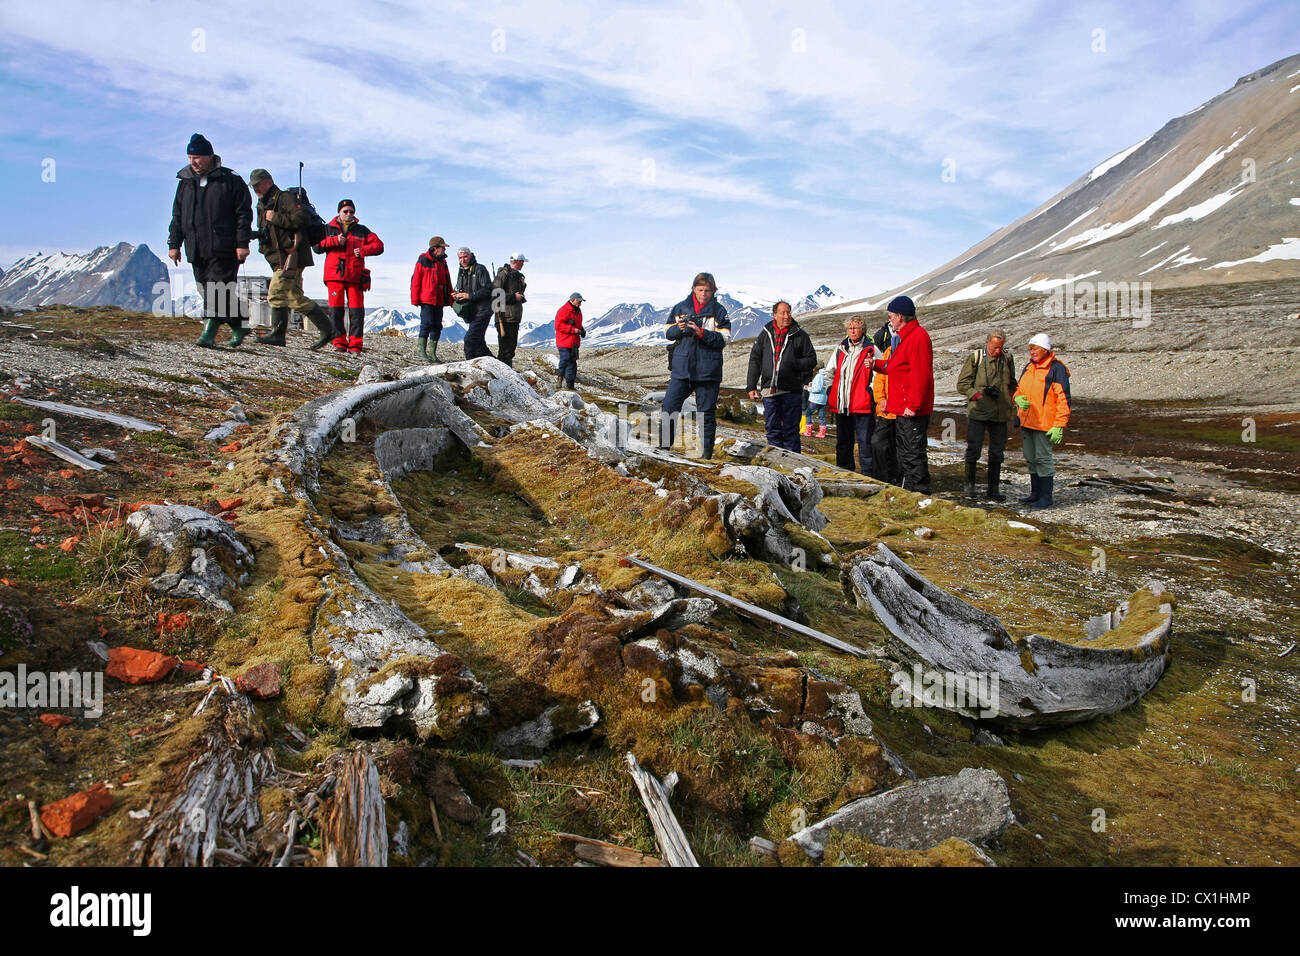 Tourists with armed guide on excursion looking at old whale bones overgrown with moss in the Hornsund, Svalbard, - Stock Image